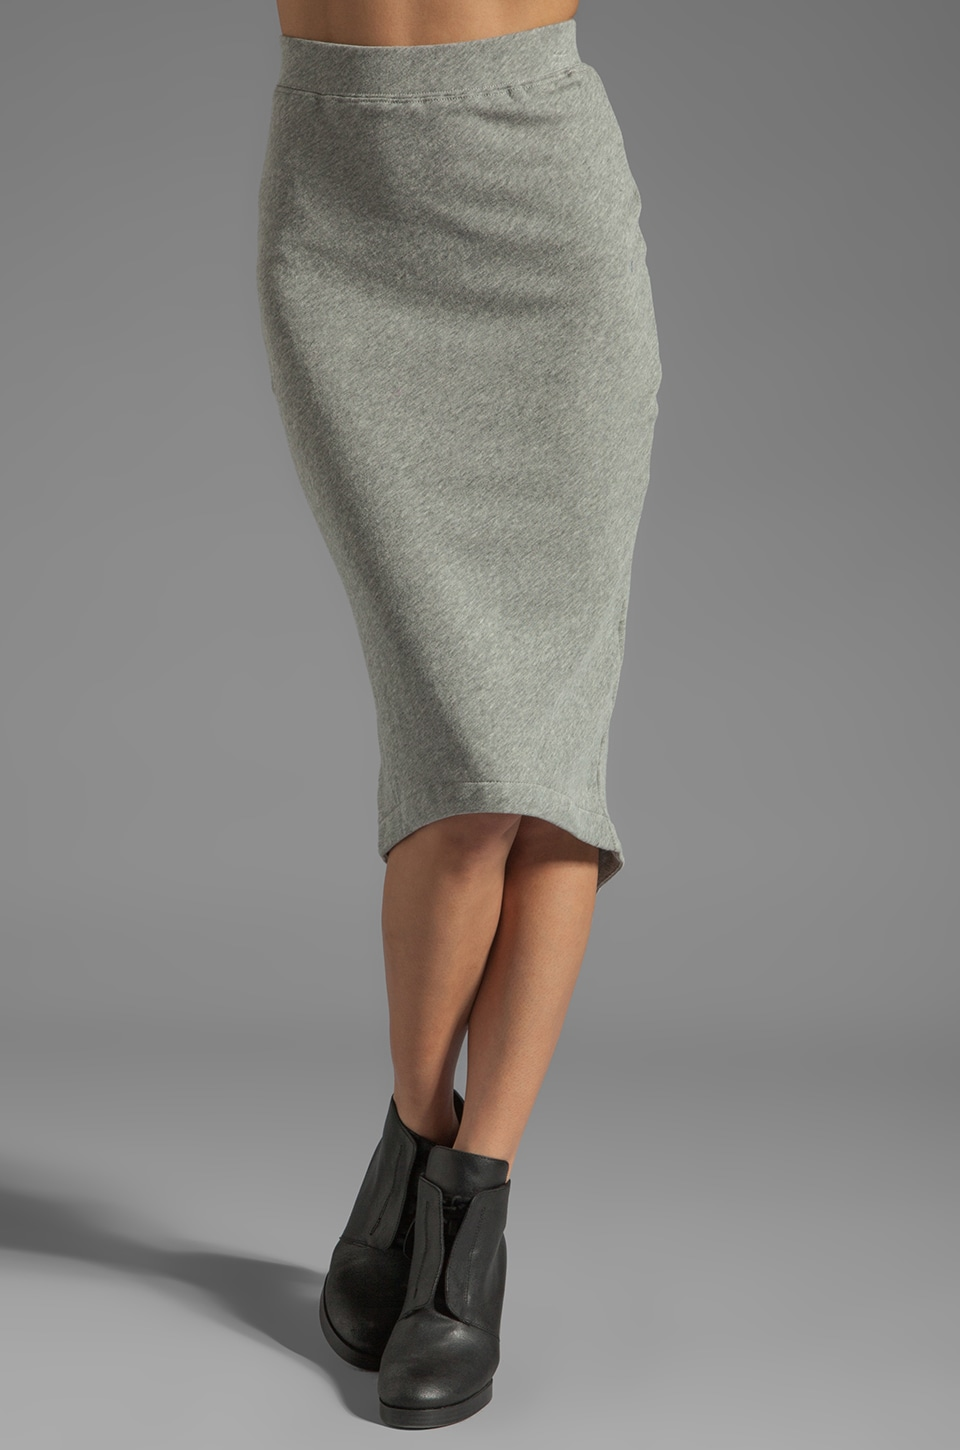 Funktional Overlapped Pencil Skirt in Grey-Scale